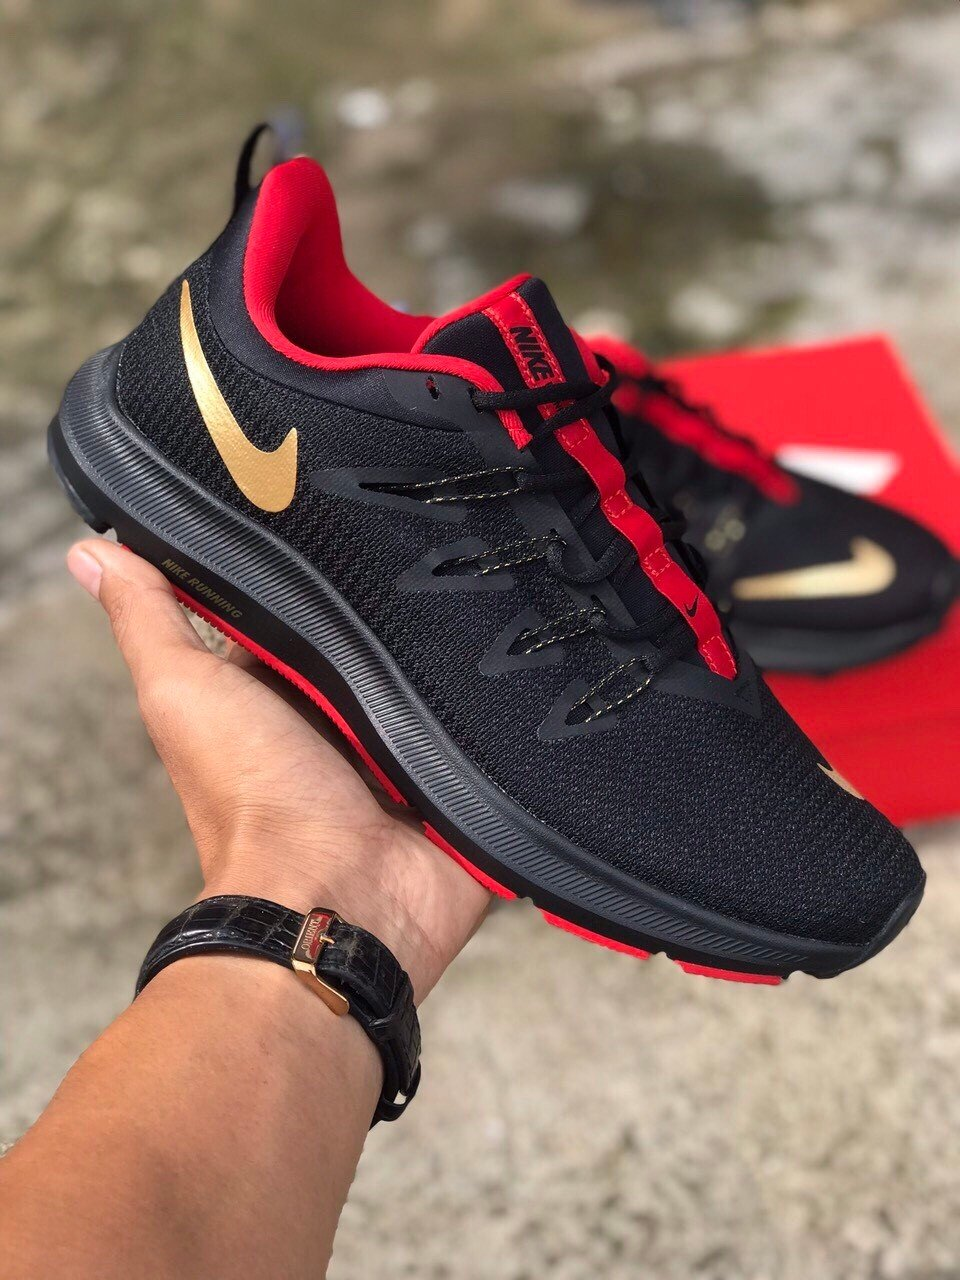 Giày thể thao NIKE QUEST LIMITED (Ảnh 4)